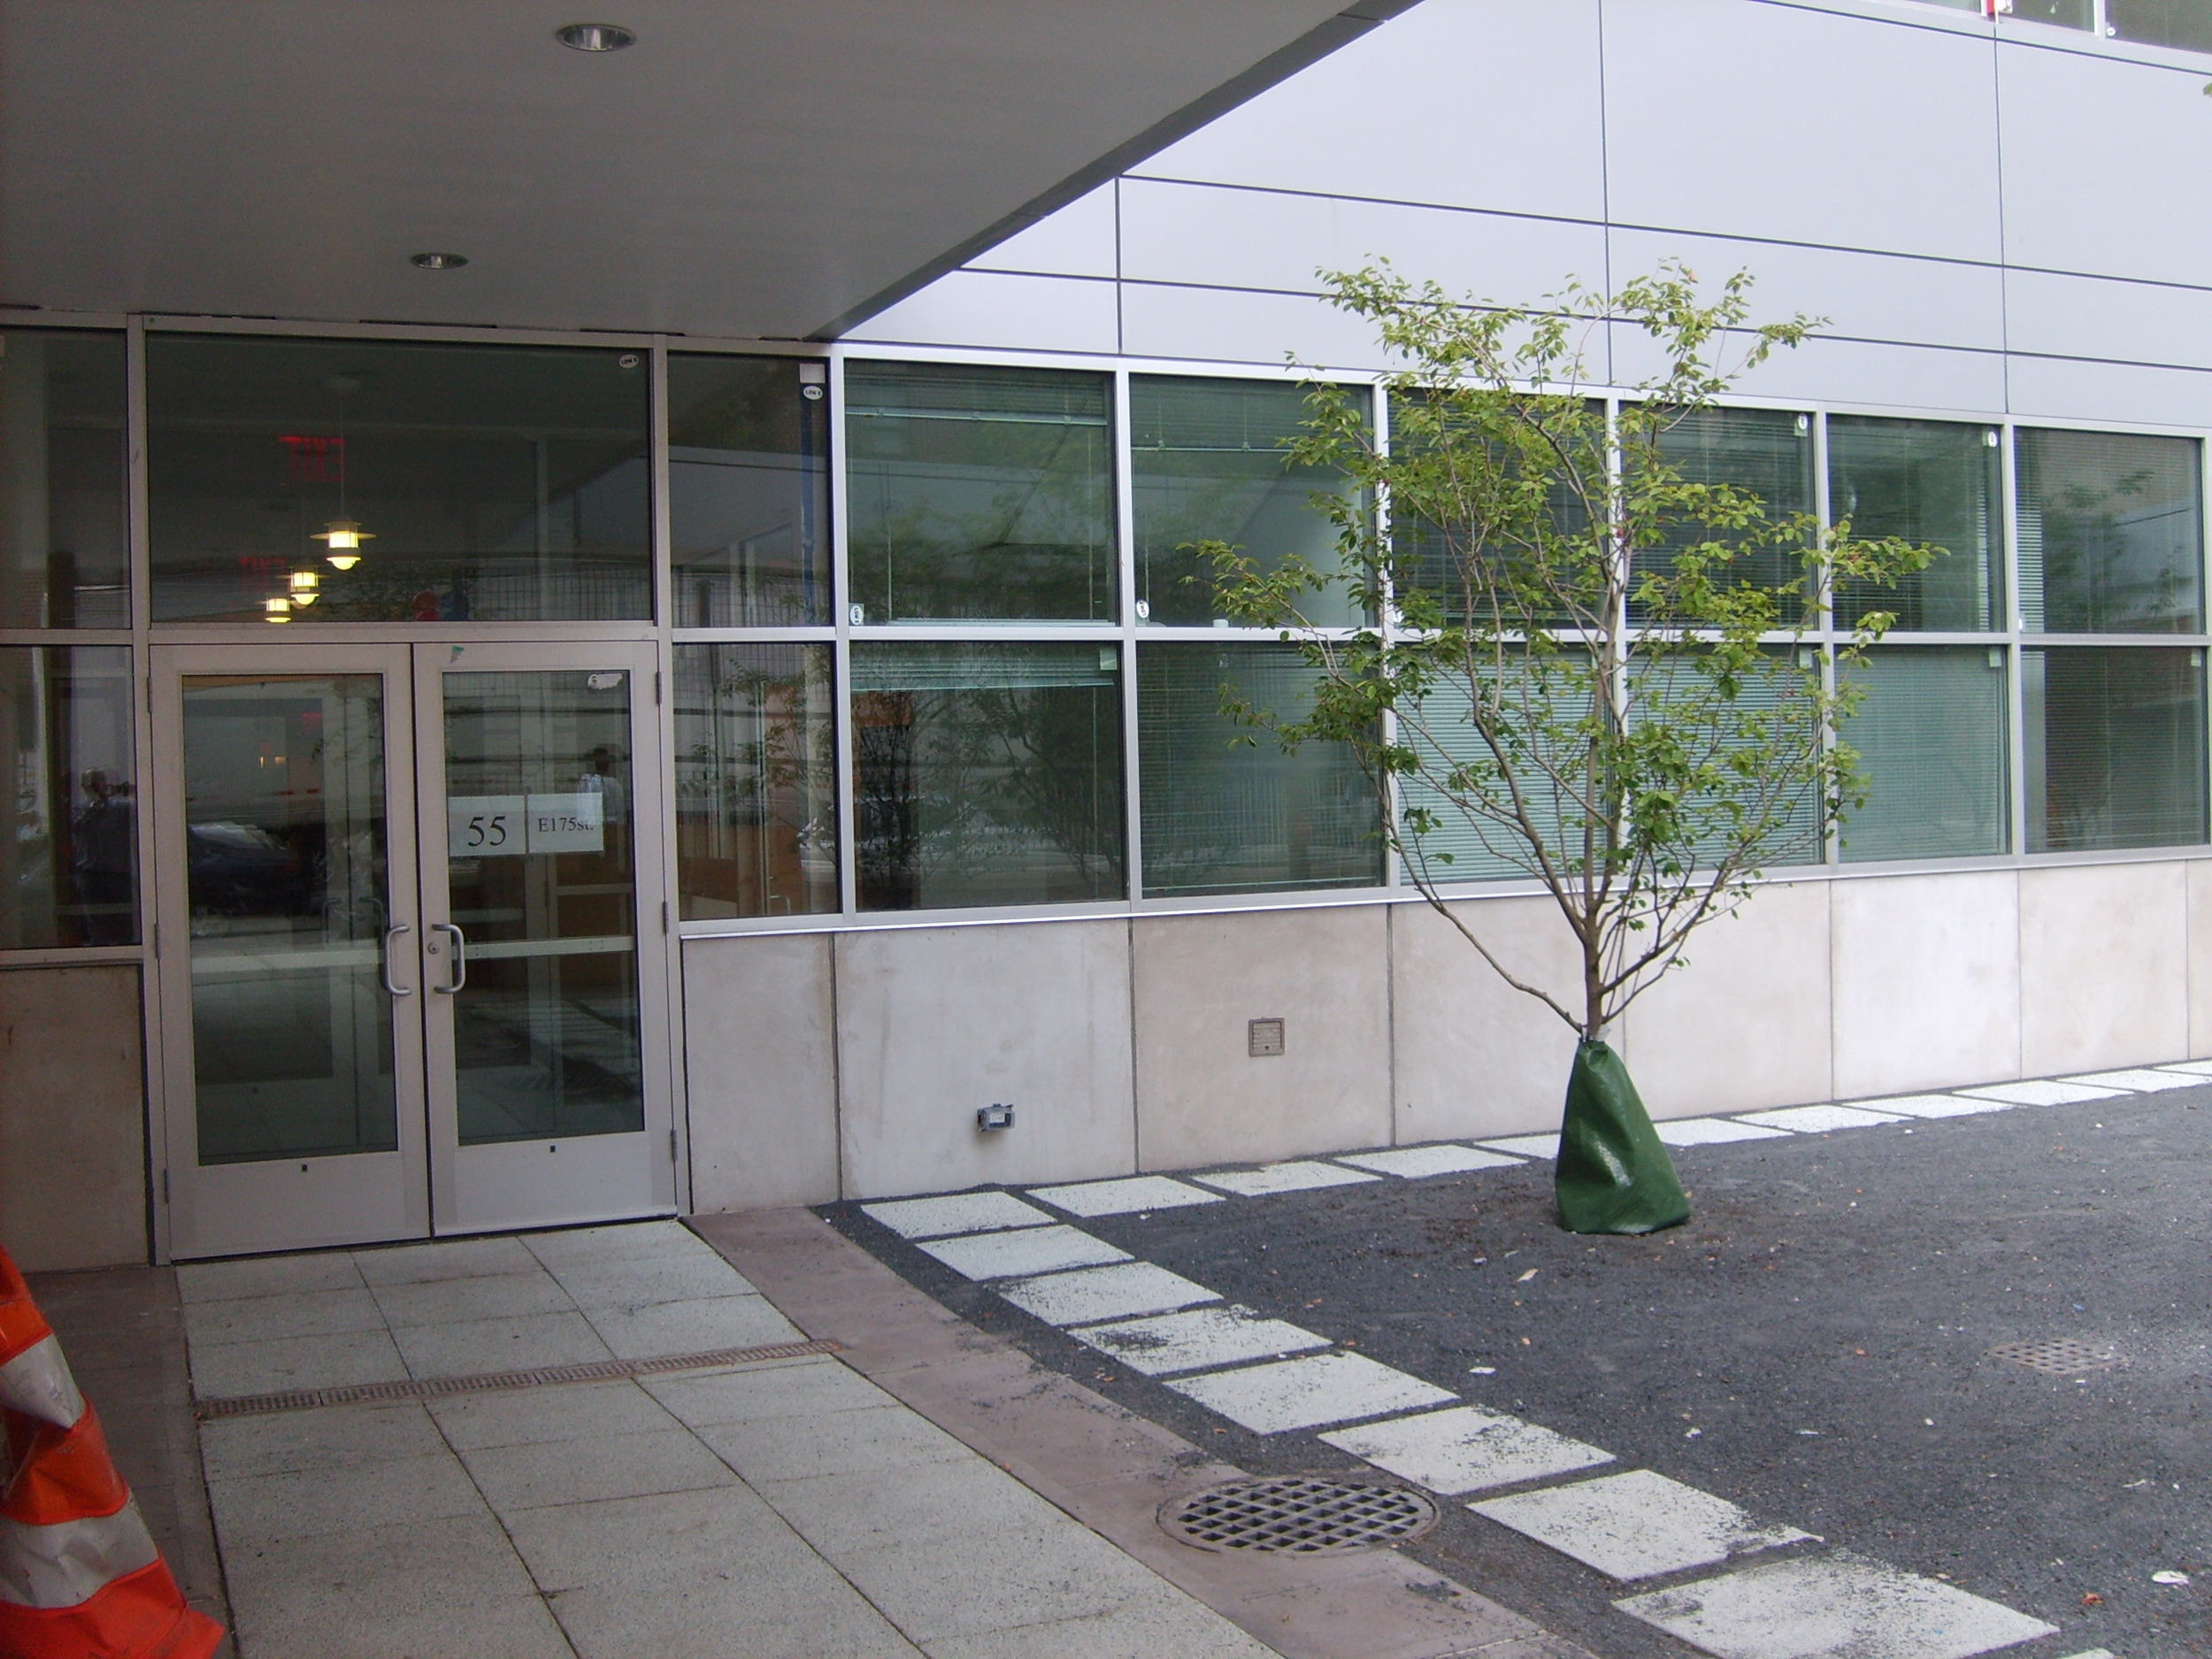 Mount Hope Green Community Center 2.jpg